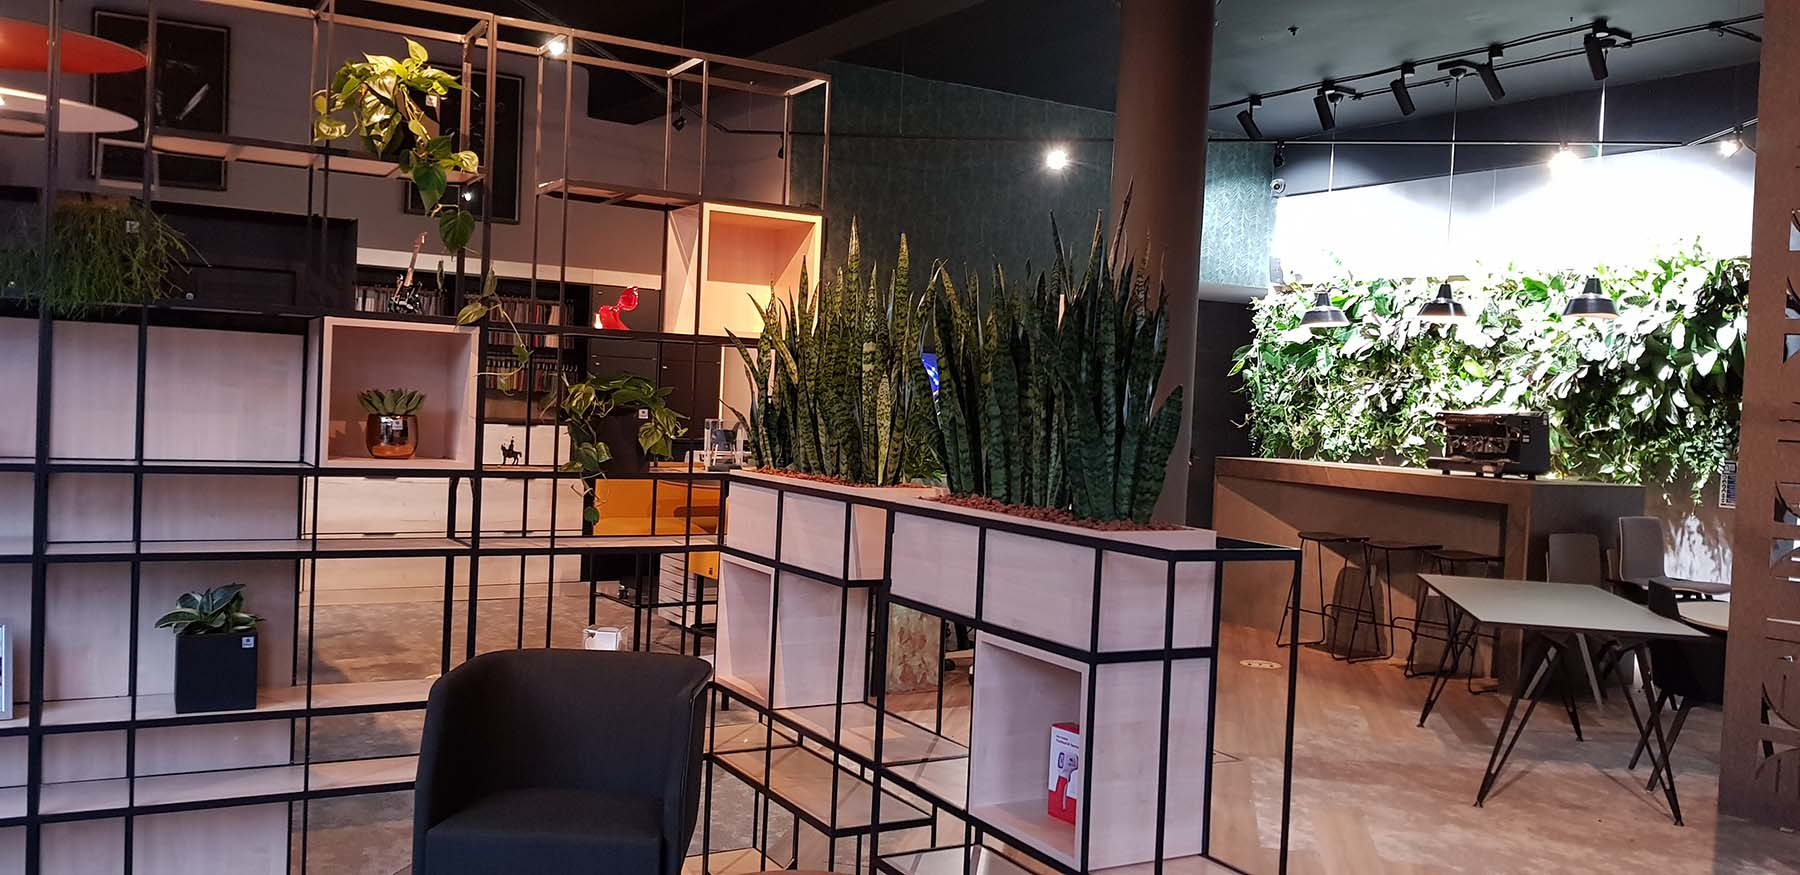 Modern office space with black grid shelving dressed with live plants including sansevieria. A lush living wall in the background